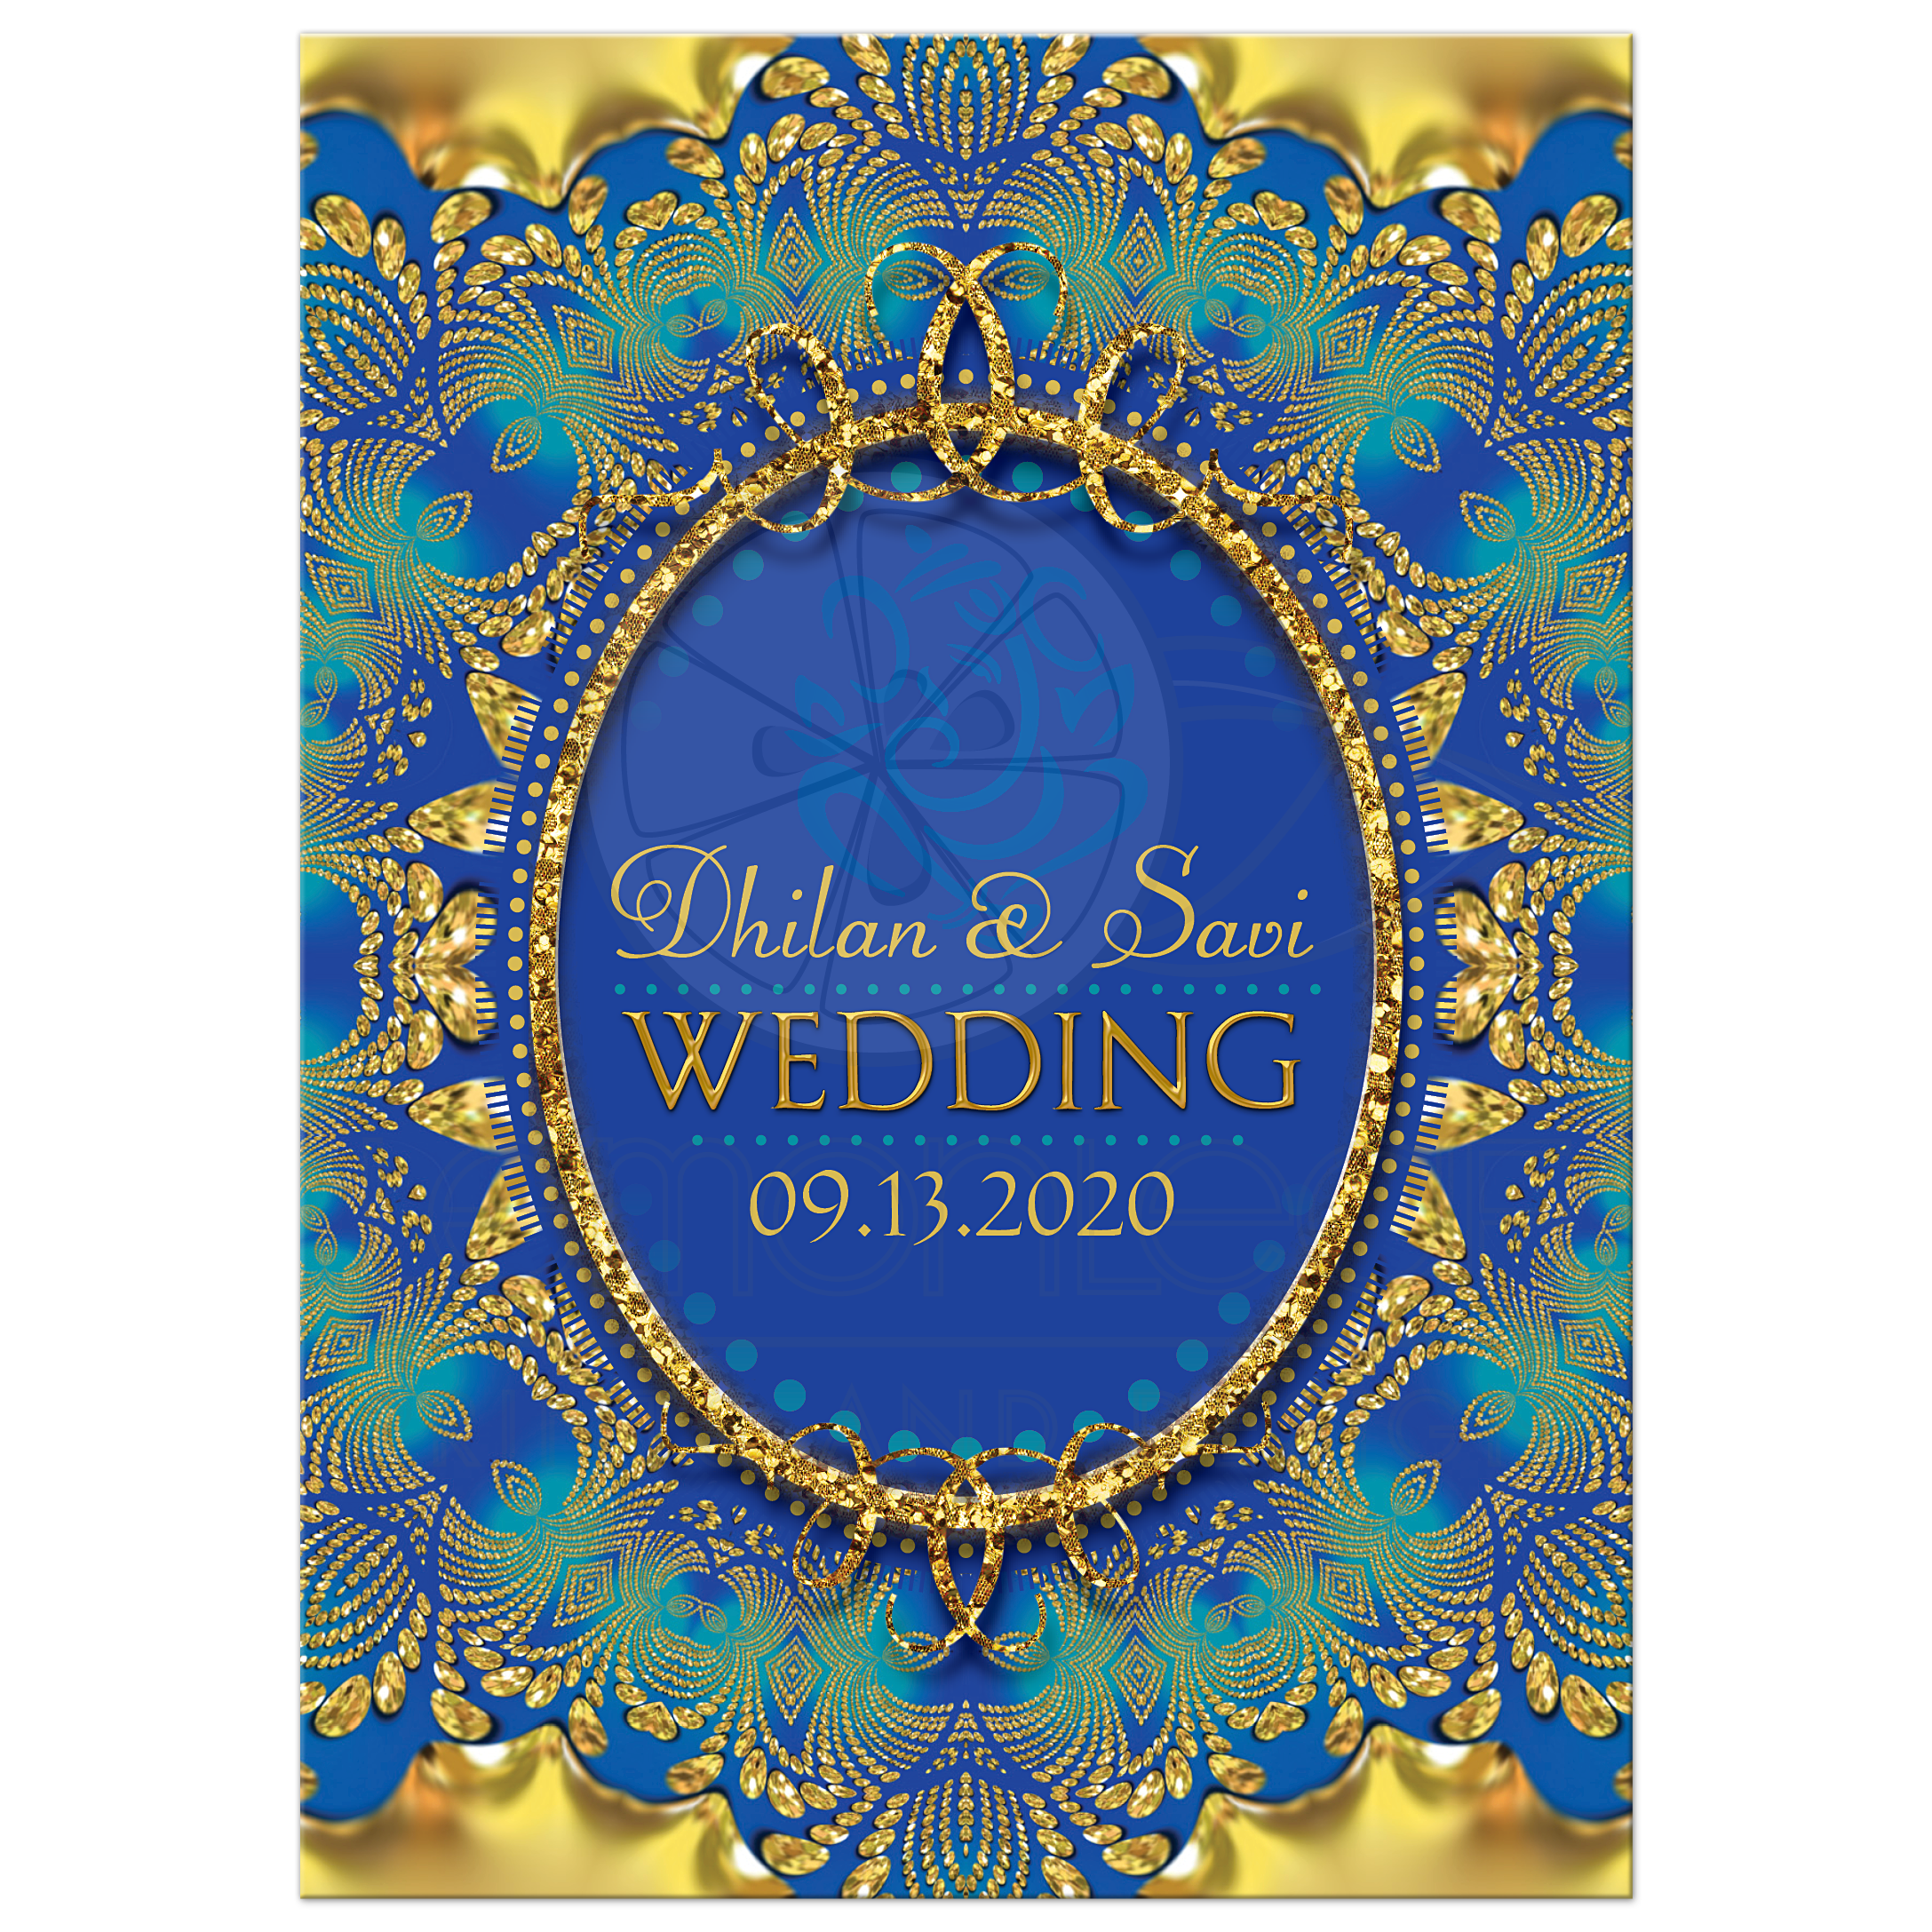 Glitter Gold & Blue Ganesha Indian Wedding Invitation